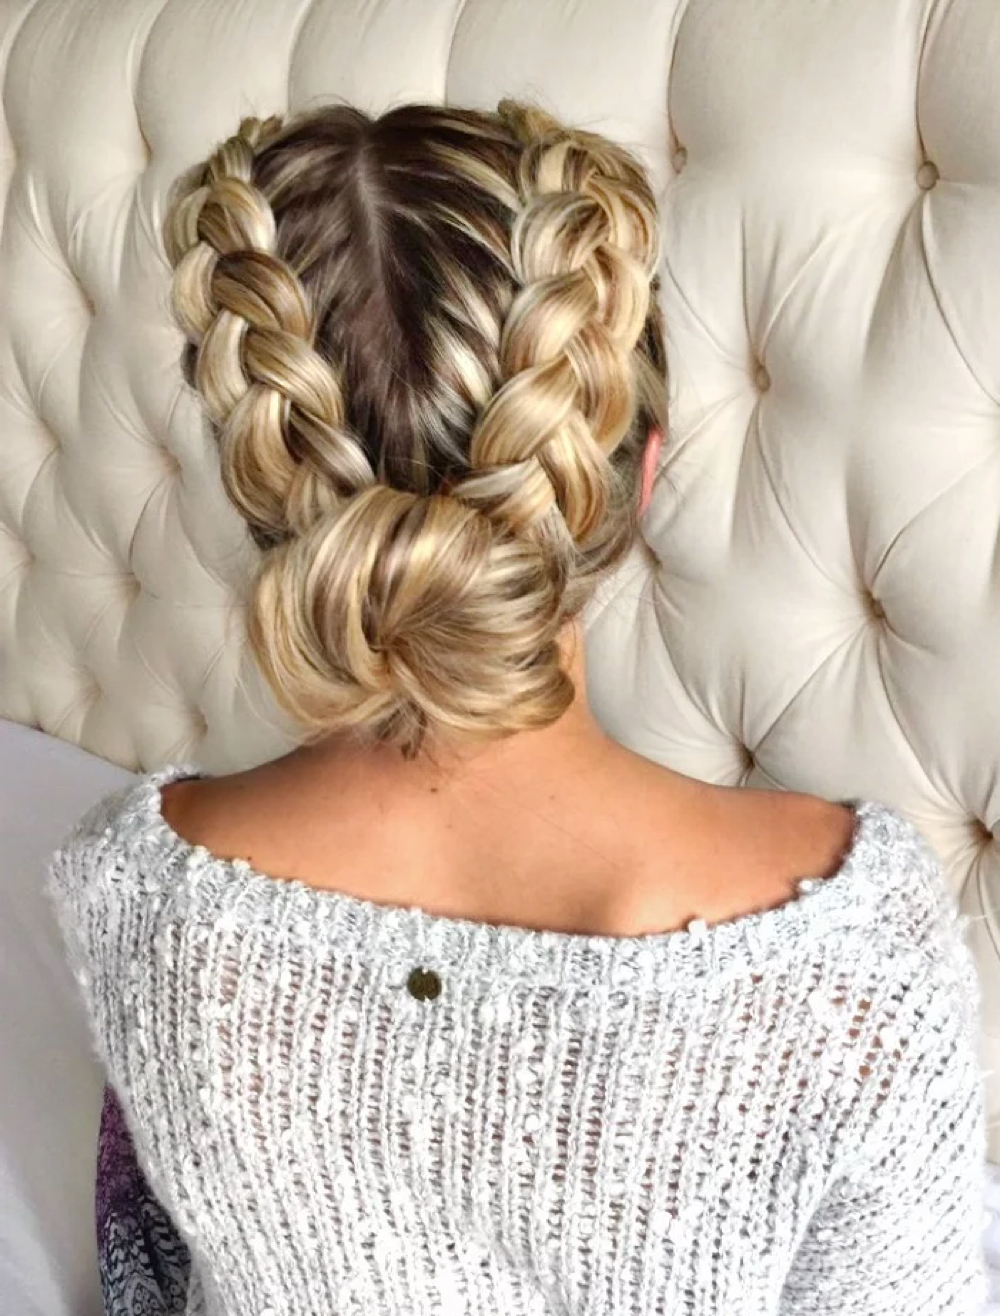 29 Gorgeous Braided Updos For Every Occasion In 2020 For Preferred Plaited Chignon Braid Hairstyles (View 7 of 20)